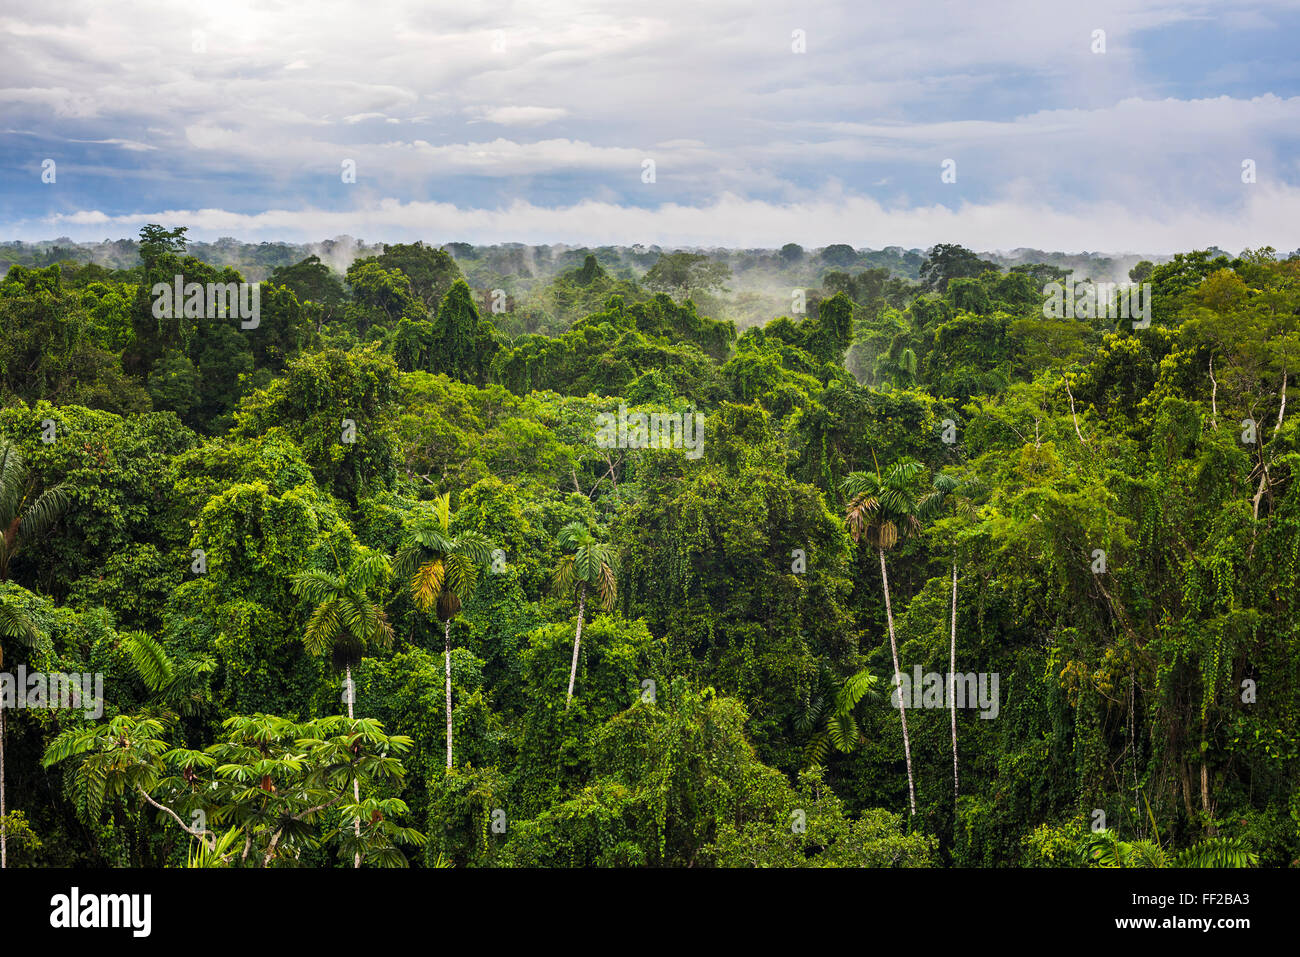 Amazon Rainforest at Sacha RModge Coca Ecuador South America